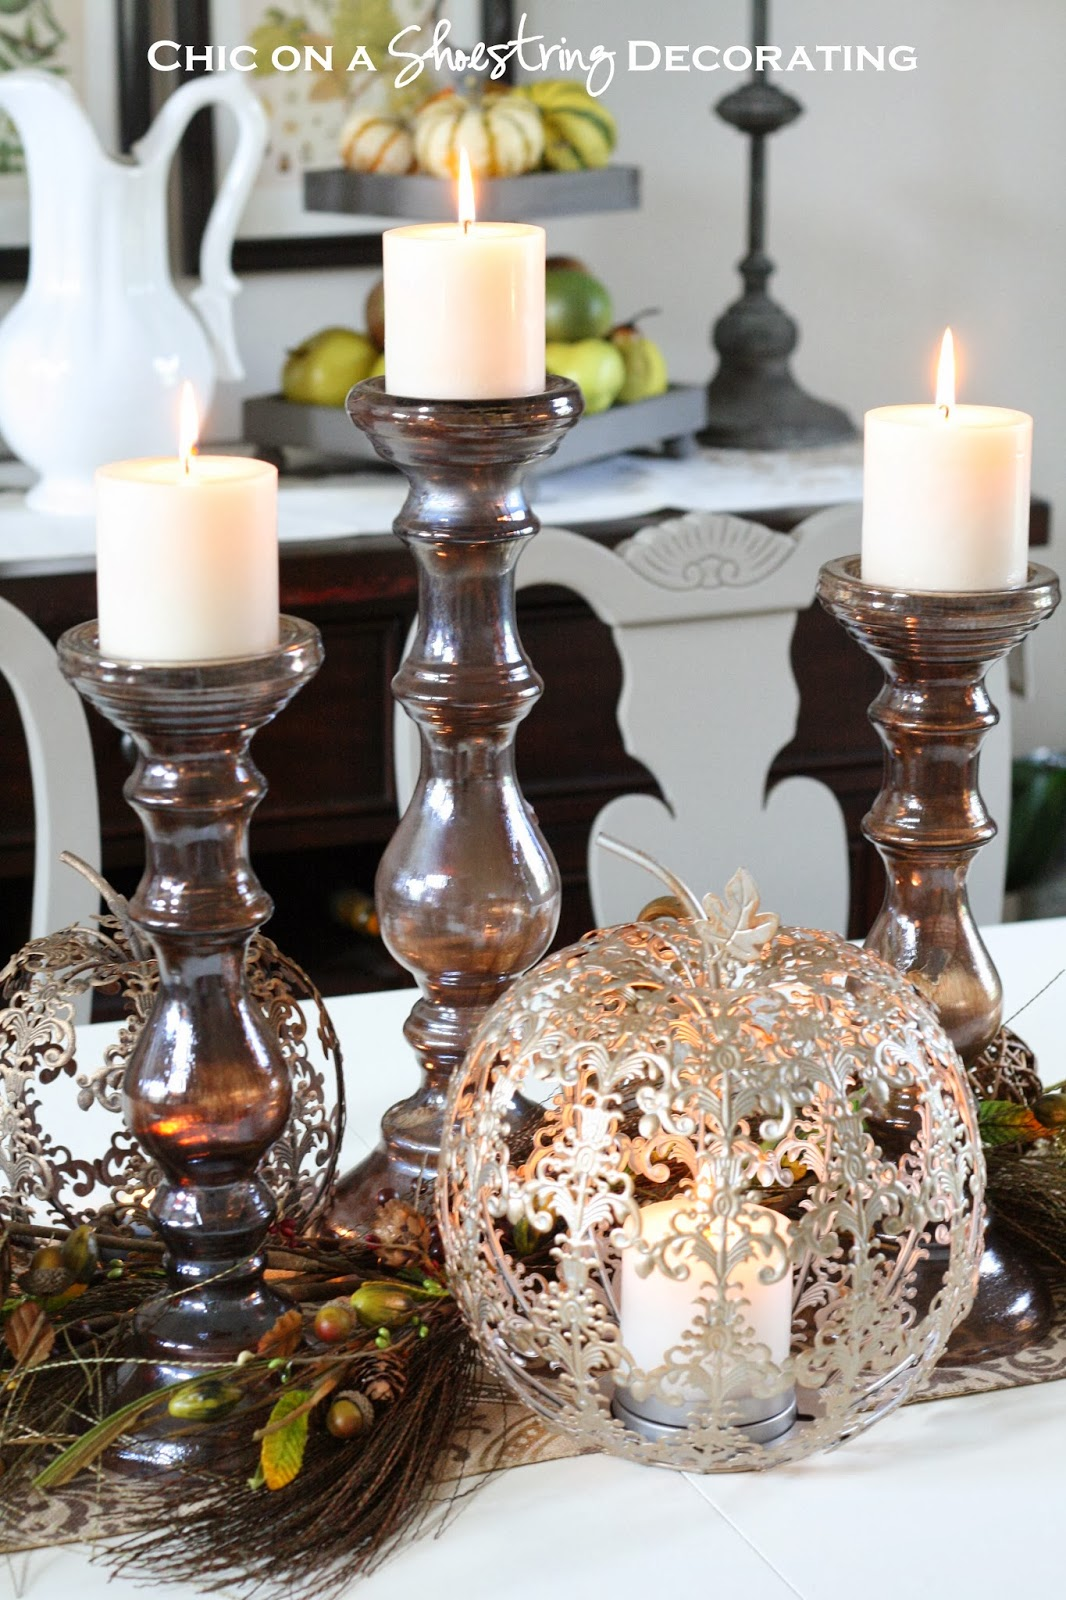 Chic On A Shoestring Decorating Fall Table Centerpiece Pier 1 Imports